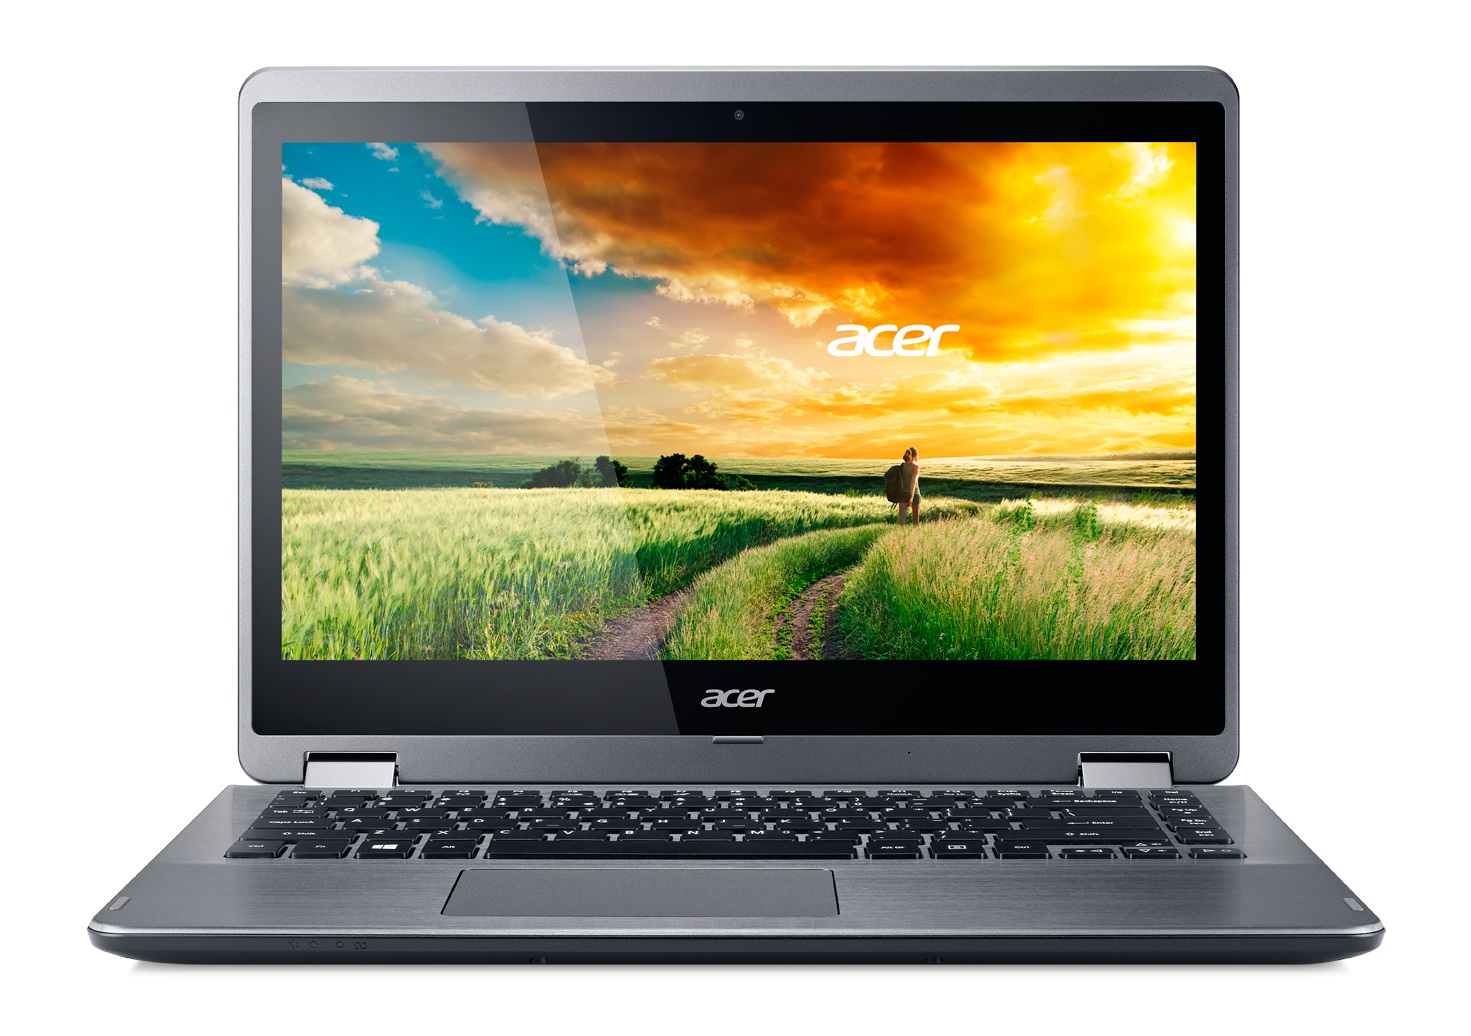 "Acer Aspire R 14 (R5-471T-766J) i7-6500U/8GB+N/256GB SSD+N/HD Graphics/14"" FHD IPS Multi-touch/BT/W10 Home/Black"